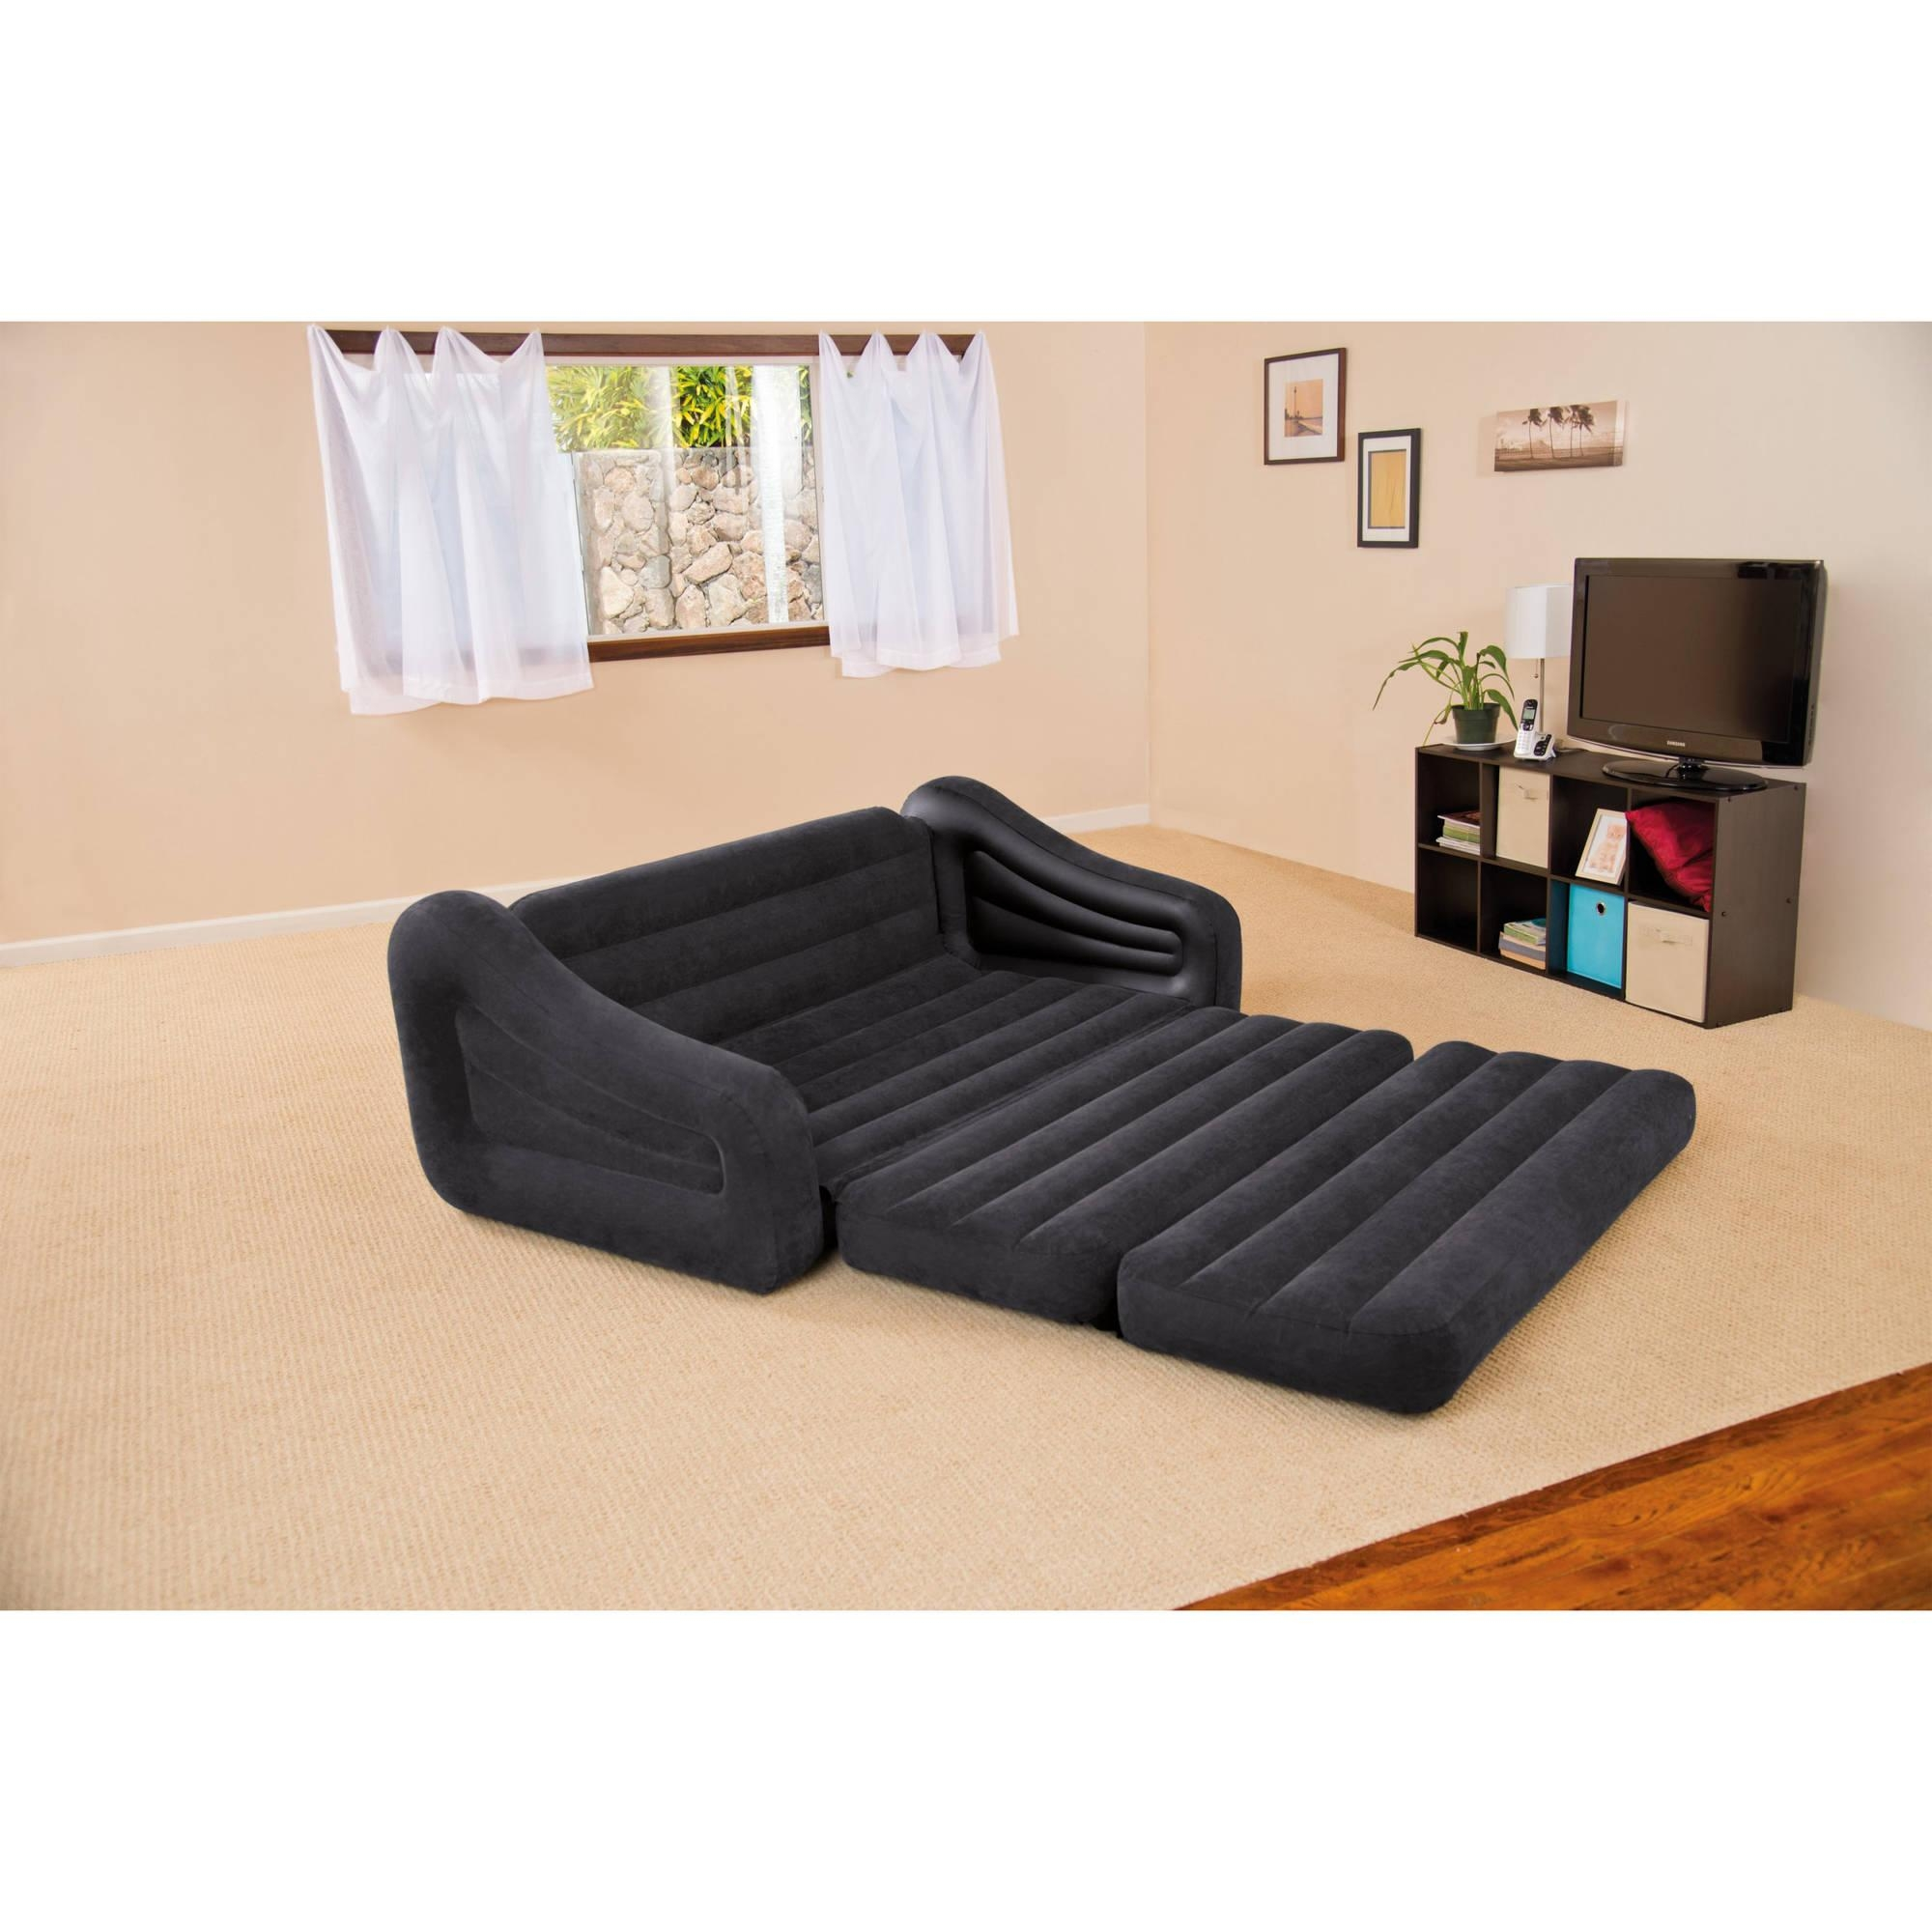 Intex Queen Inflatable Pull-Out Sofa Bed - Walmart throughout Queen Sofa Beds